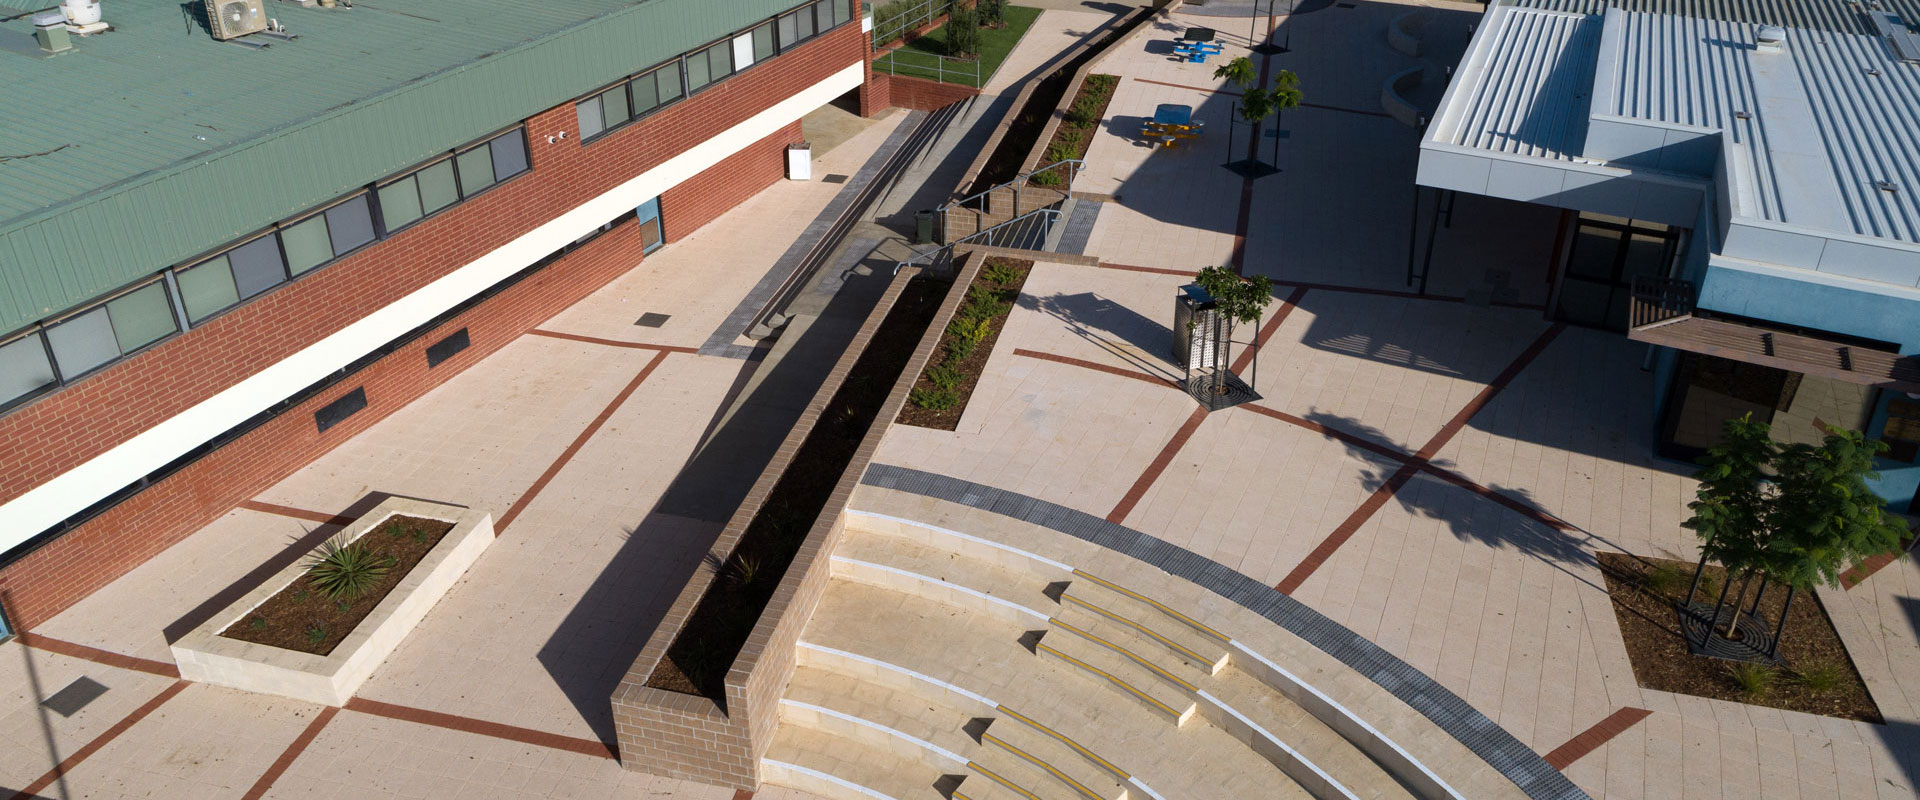 Commercial Paving Projects Perth